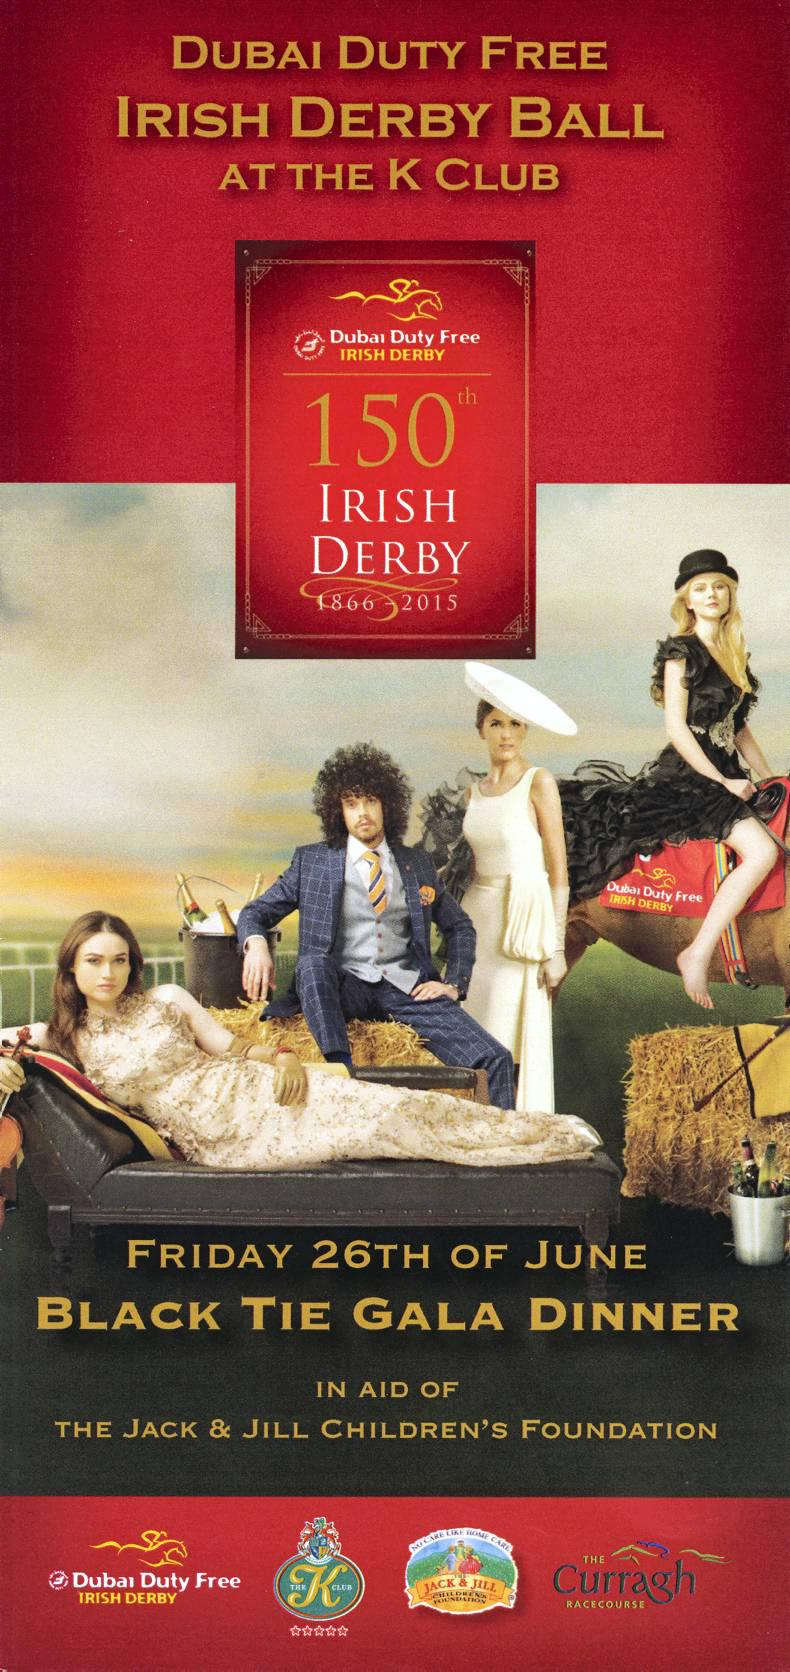 Glamour and fun at Irish Derby ball